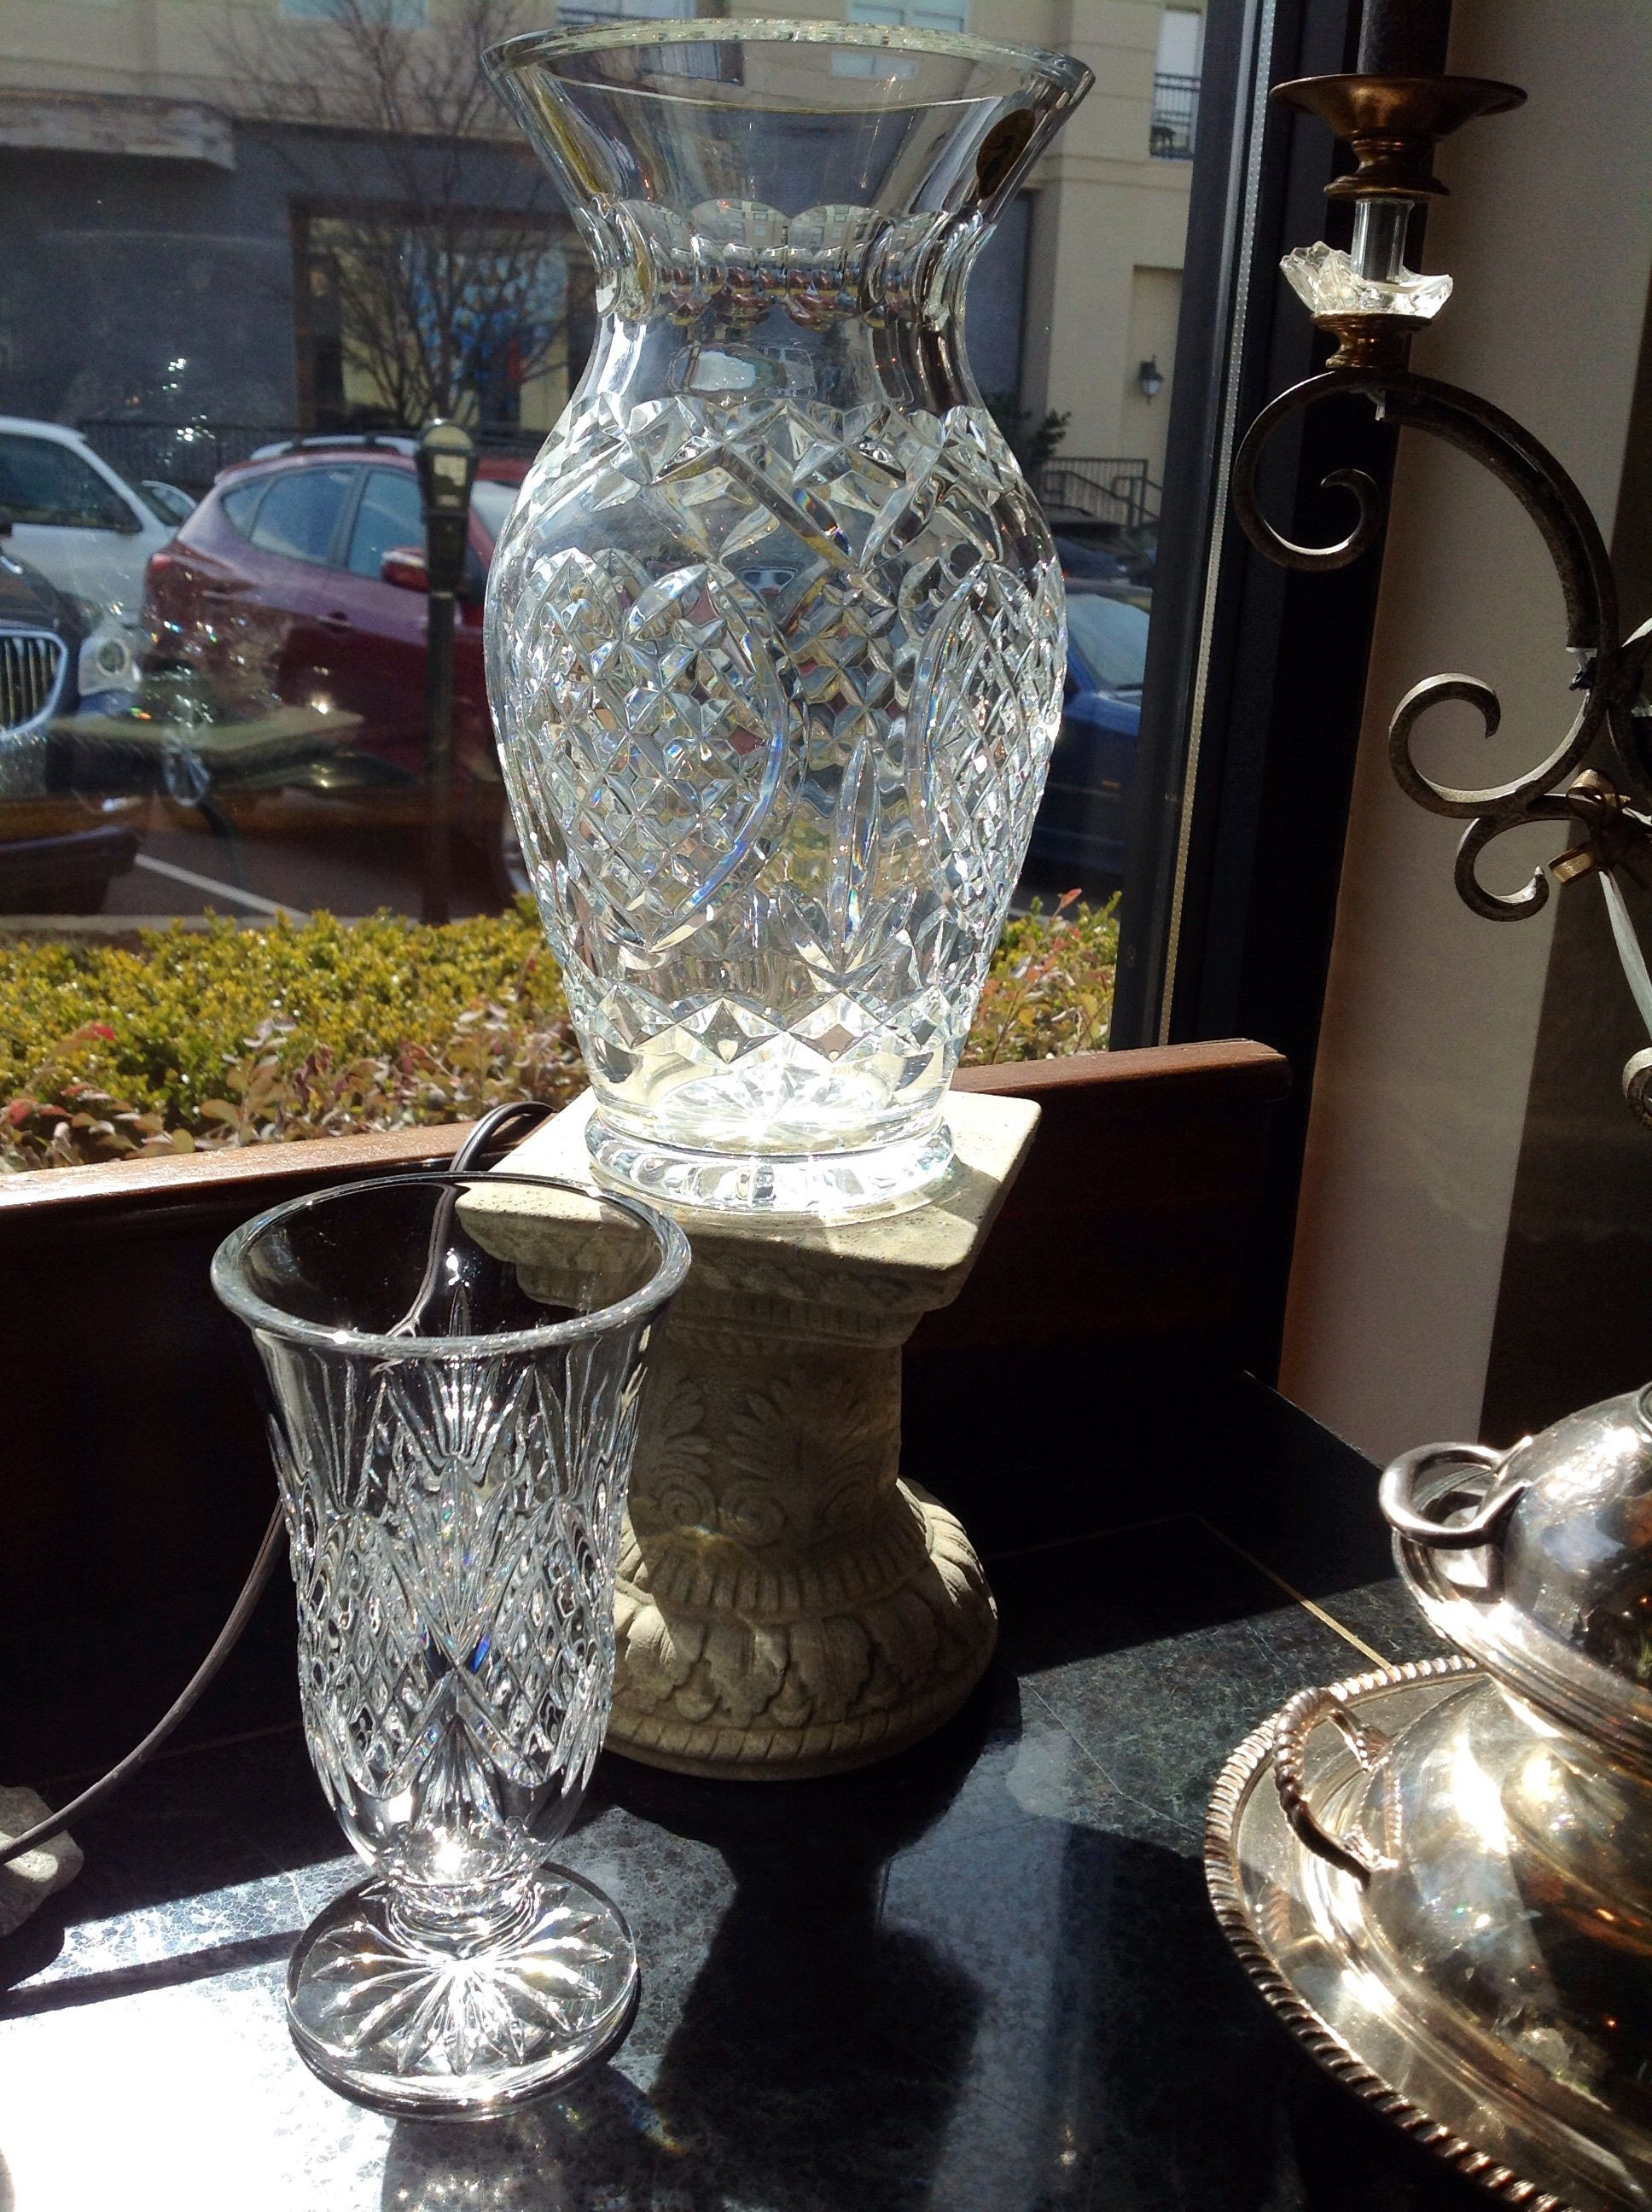 large waterford vase of waterford crystal vase large 225 00 small 65 00 call le villa in within waterford crystal vase large 225 00 small 65 00 call le villa in allen tx for details